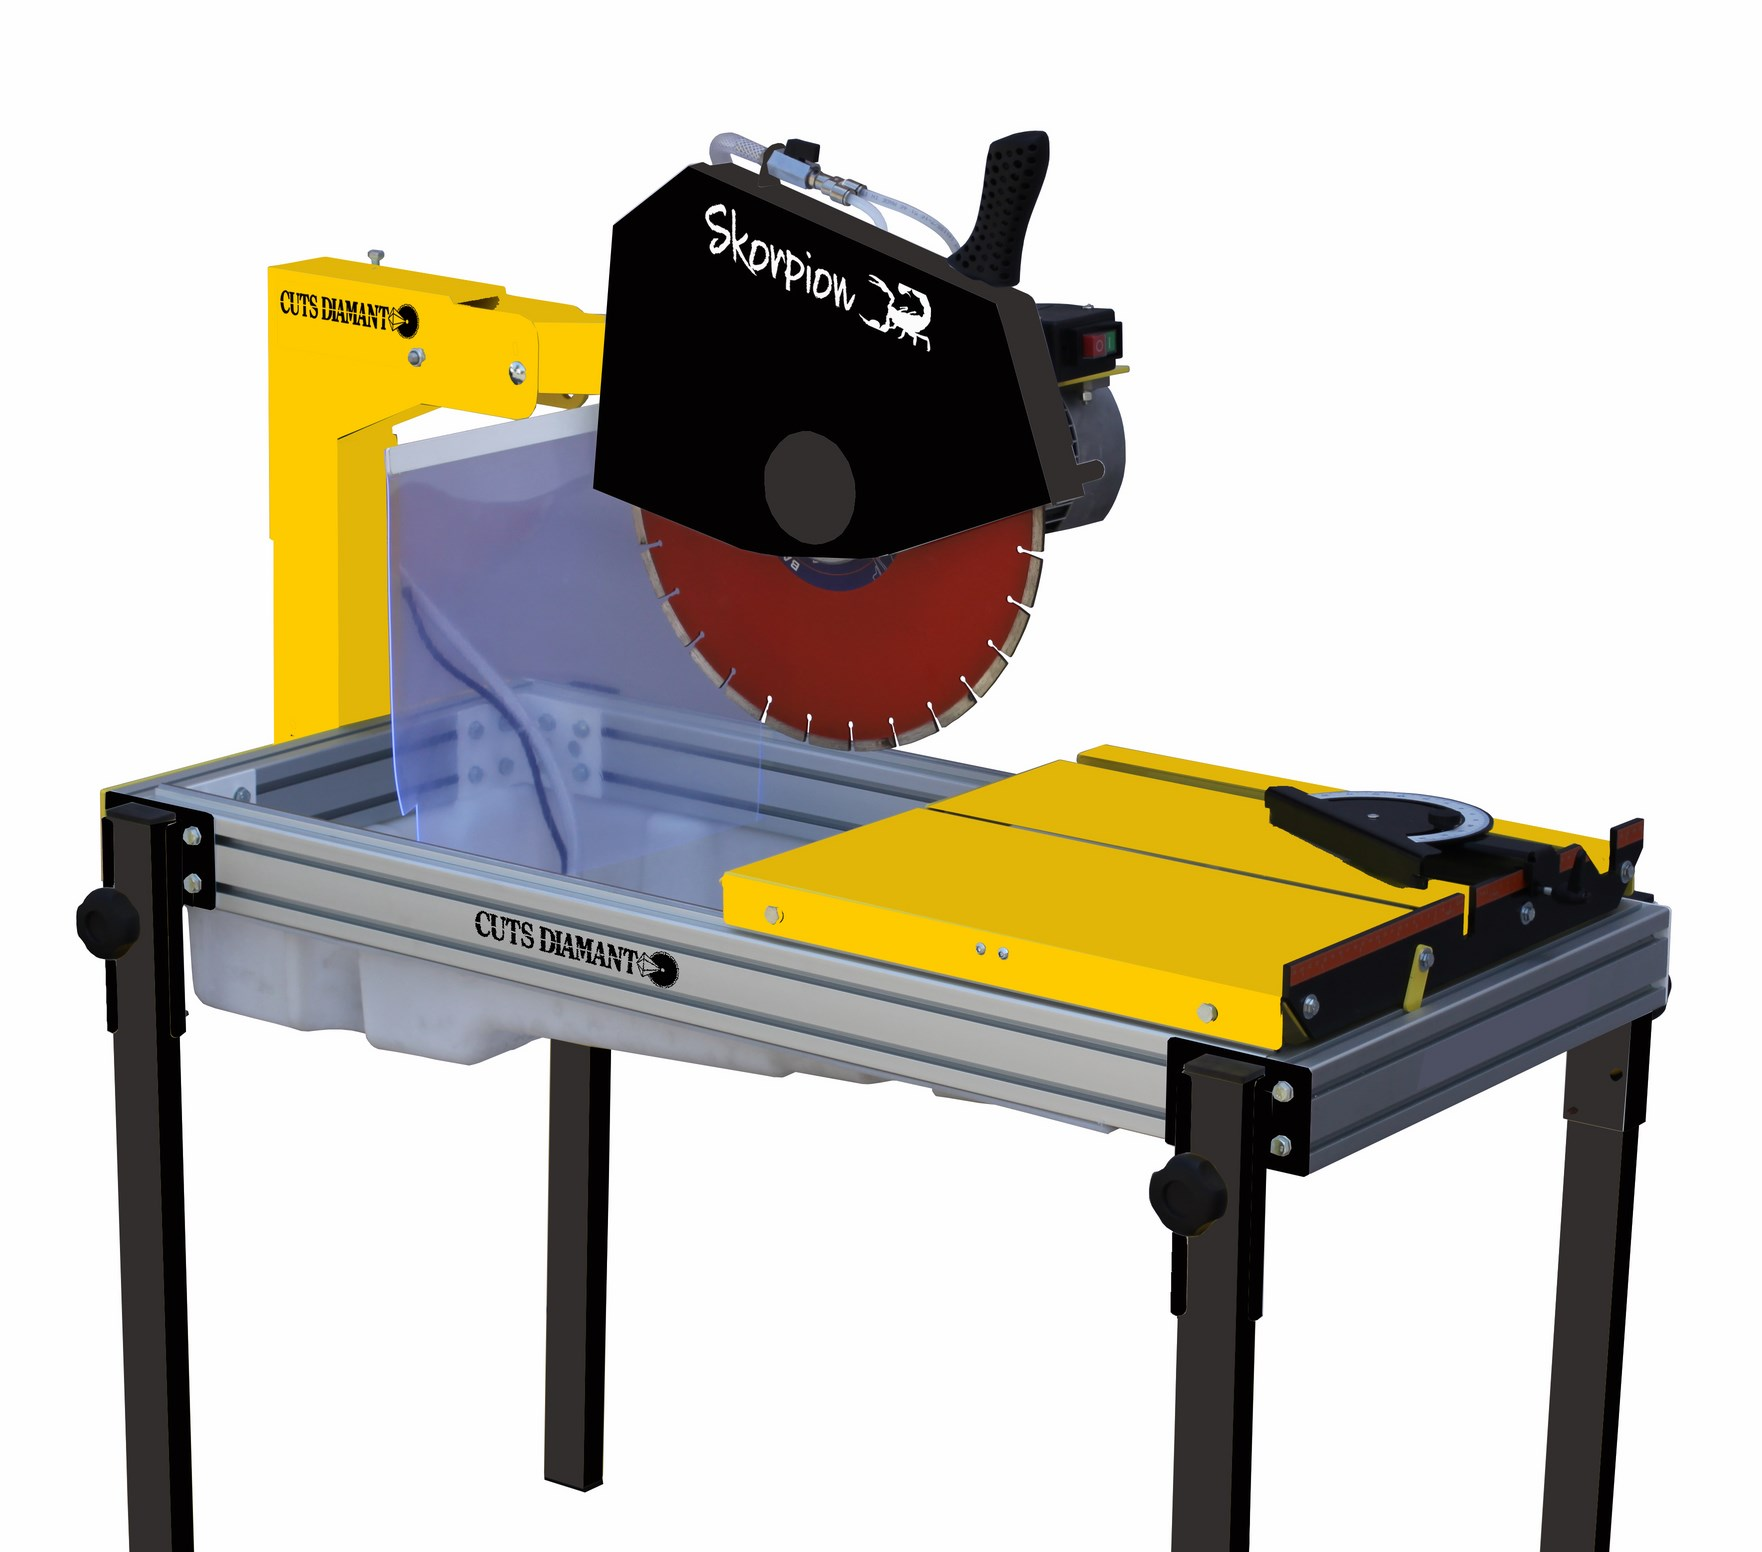 Masonry saw table saw high cutting capacity diamond blades cuts the models of masonry saws available differ from each other in the maximum blade that they can mount and consequently in the maximum cutting depth keyboard keysfo Choice Image